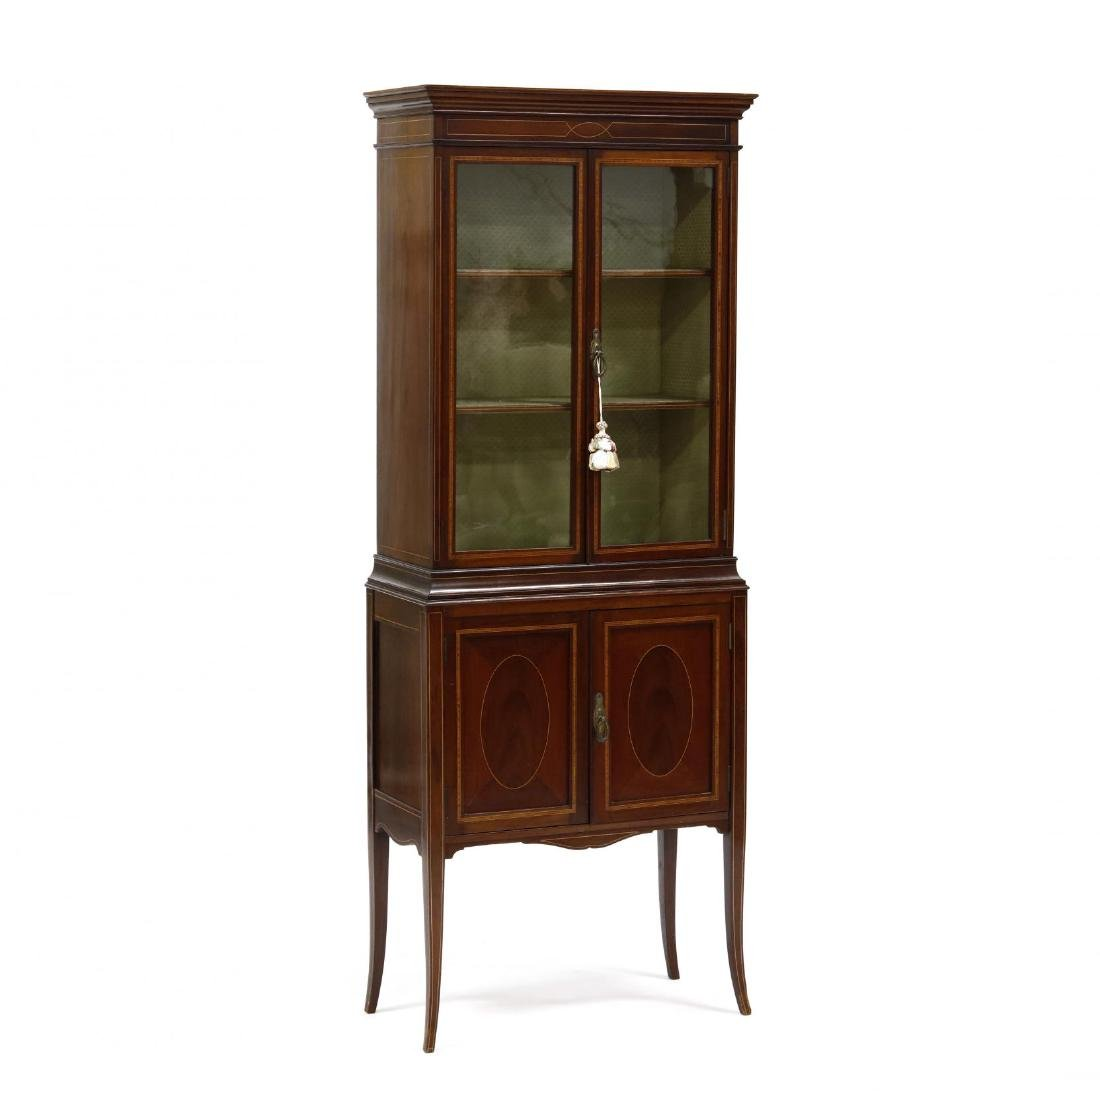 Edwardian Diminutive Bookcase